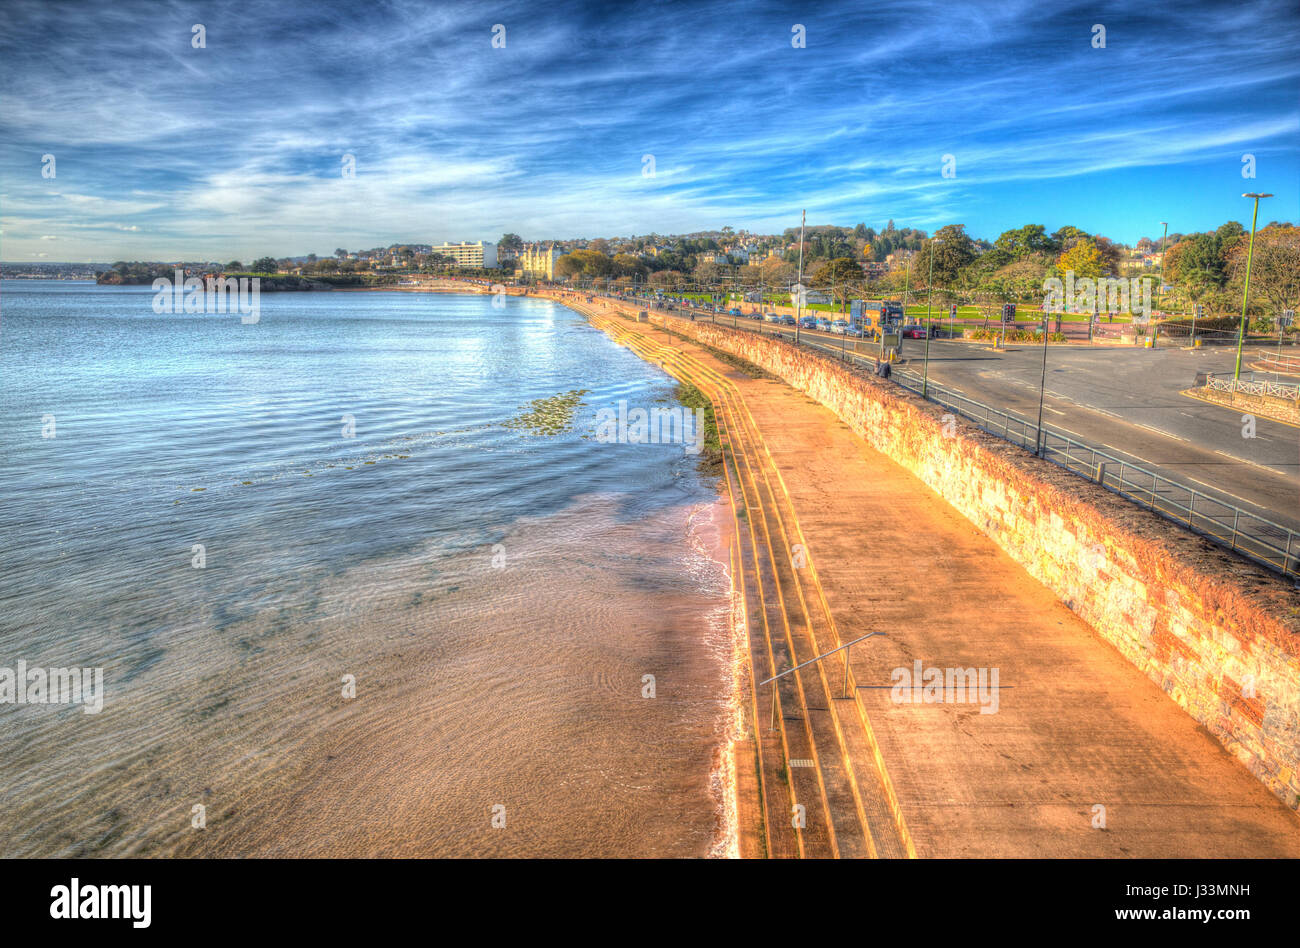 Torquay Devon promenade on the English Riviera in colourful HDR - Stock Image